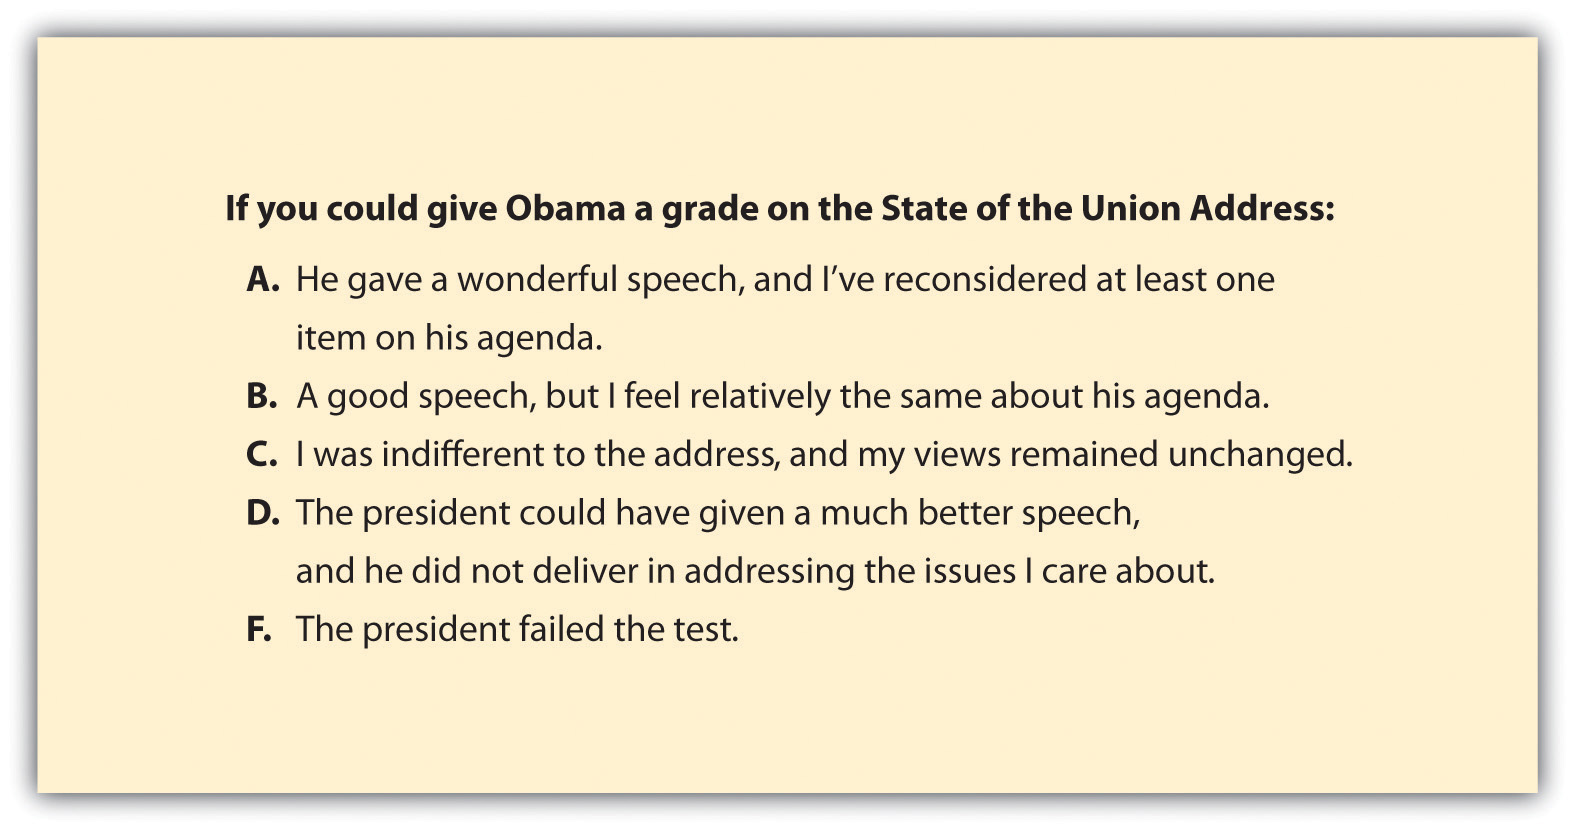 If you could give Obama a grade on the State of the Union Address: A) He gave a wonderful speech, and I've reconsidered at least one item on his agenda. B) A good speech, but I feel relatively the same about his agenda. C) I was indifferent to the address, and my views remained unchanged. D) The president could have given a much better speech, and he did not deliver in addressing the issues I care about. F) The president failed the test.